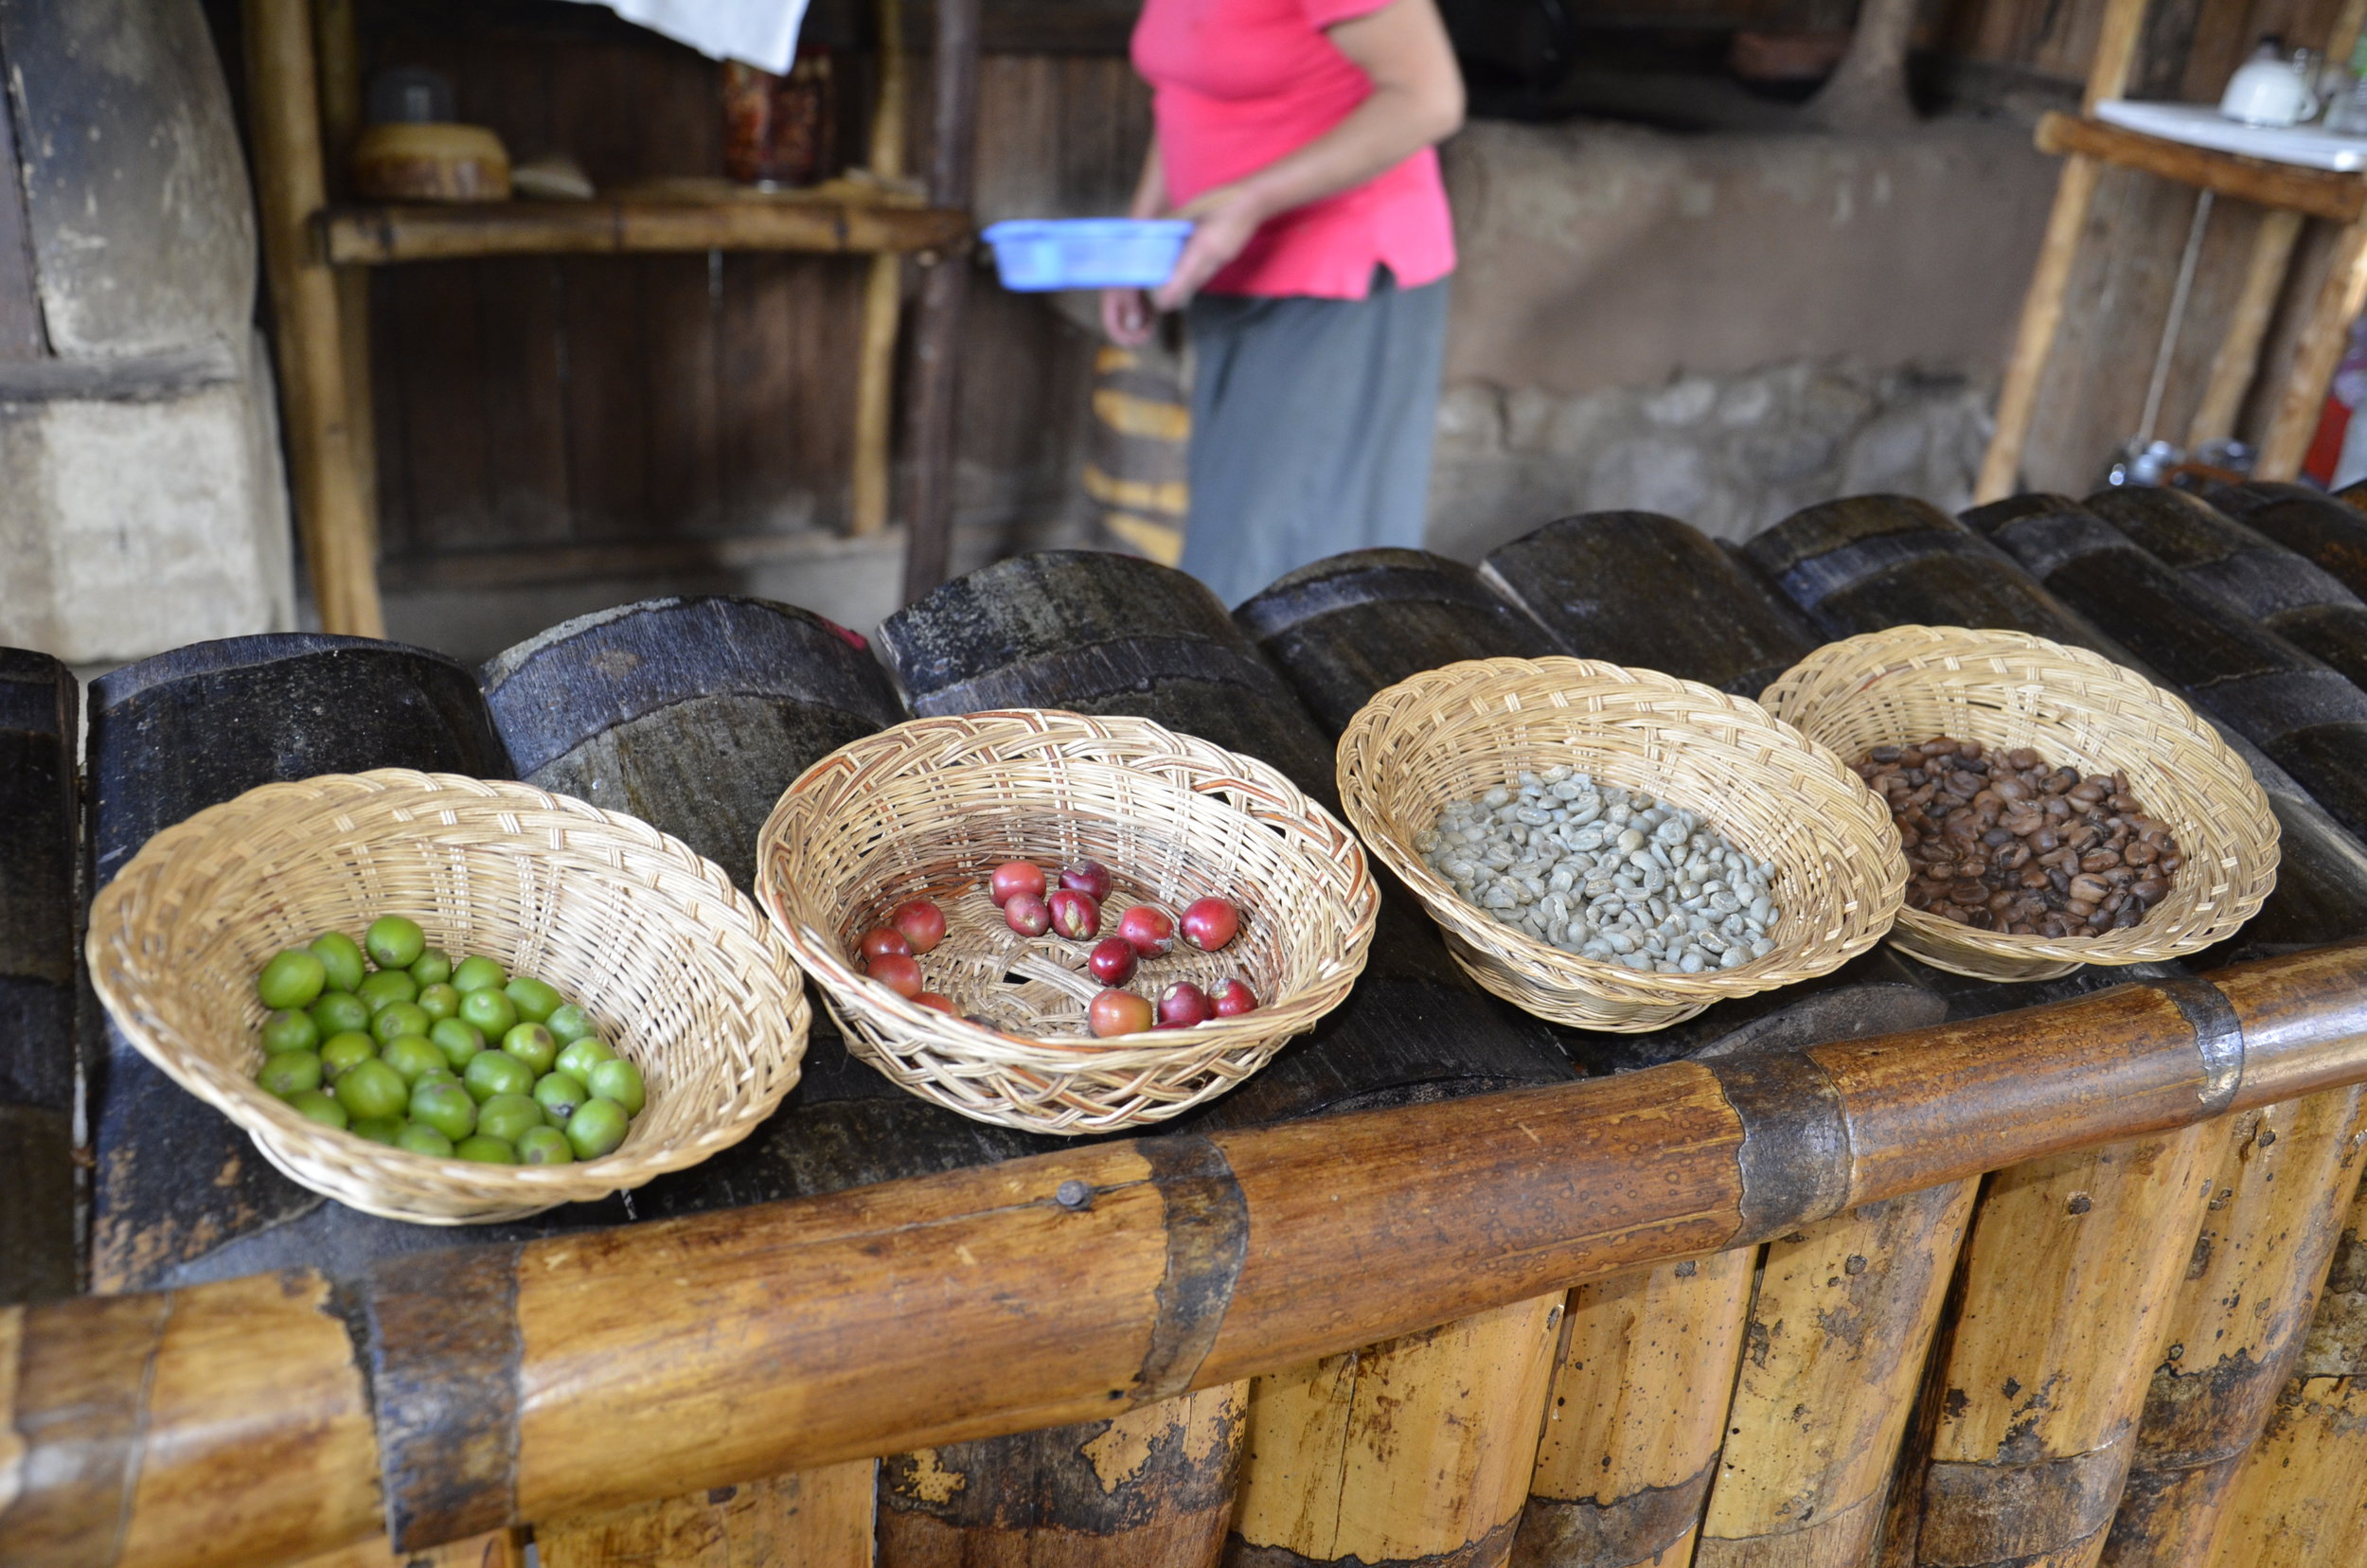 Beans that are: green; ripe; sun dried; roasted